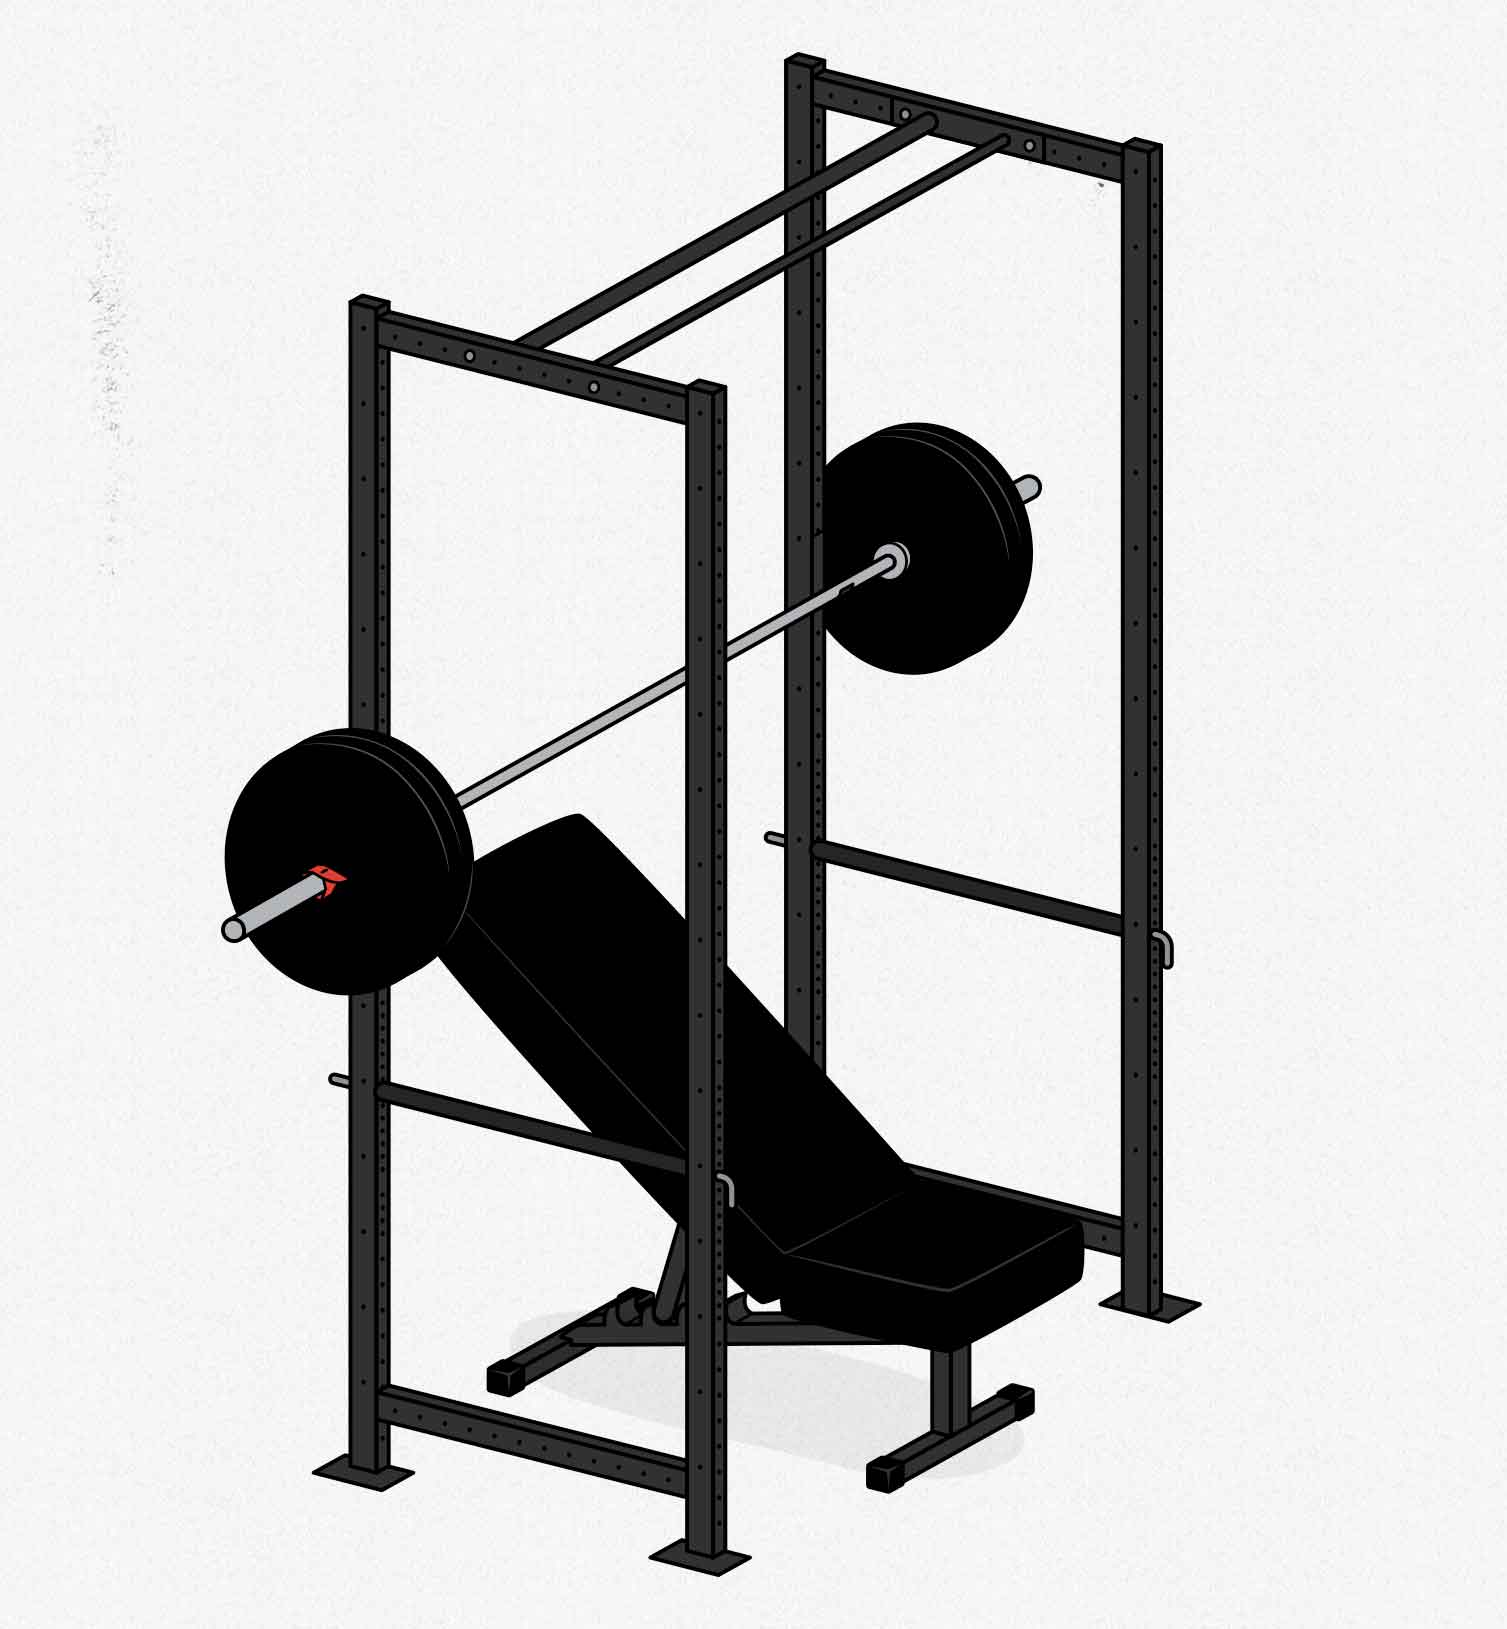 Diagram of a simple barbell home gym that's perfect for beginners.